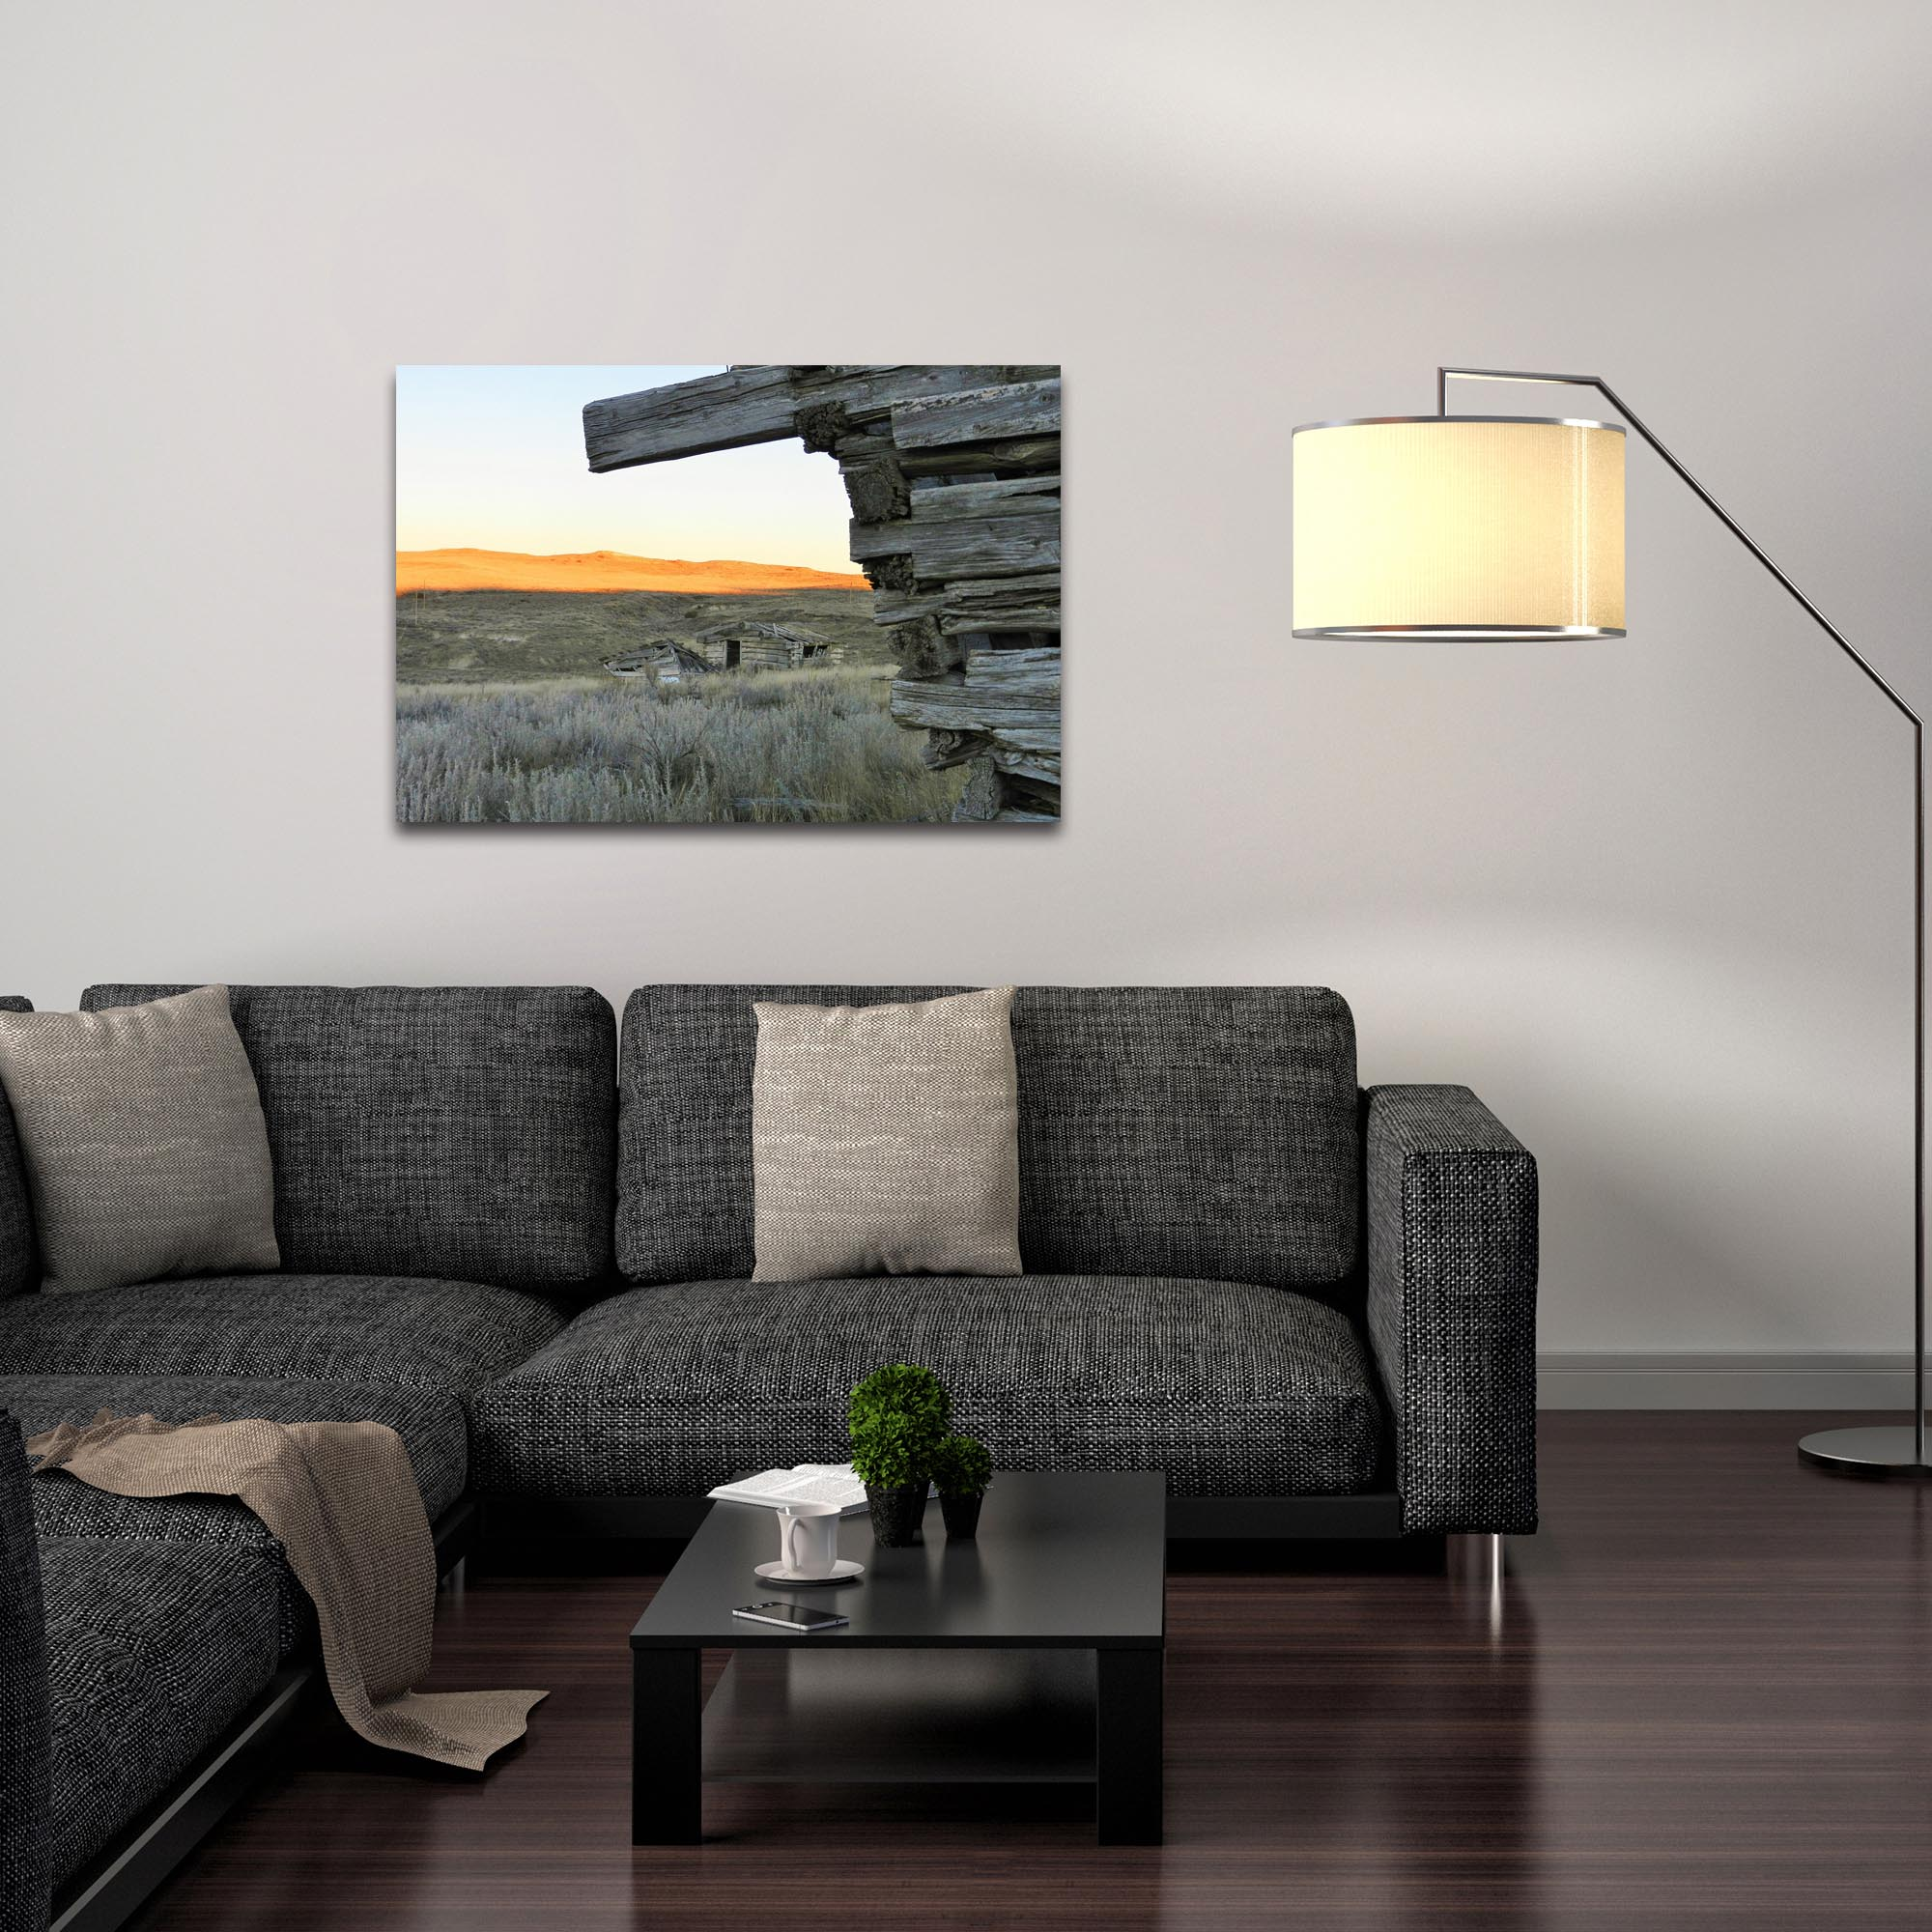 Western Wall Art 'The Corner' - American West Decor on Metal or Plexiglass - Lifestyle View